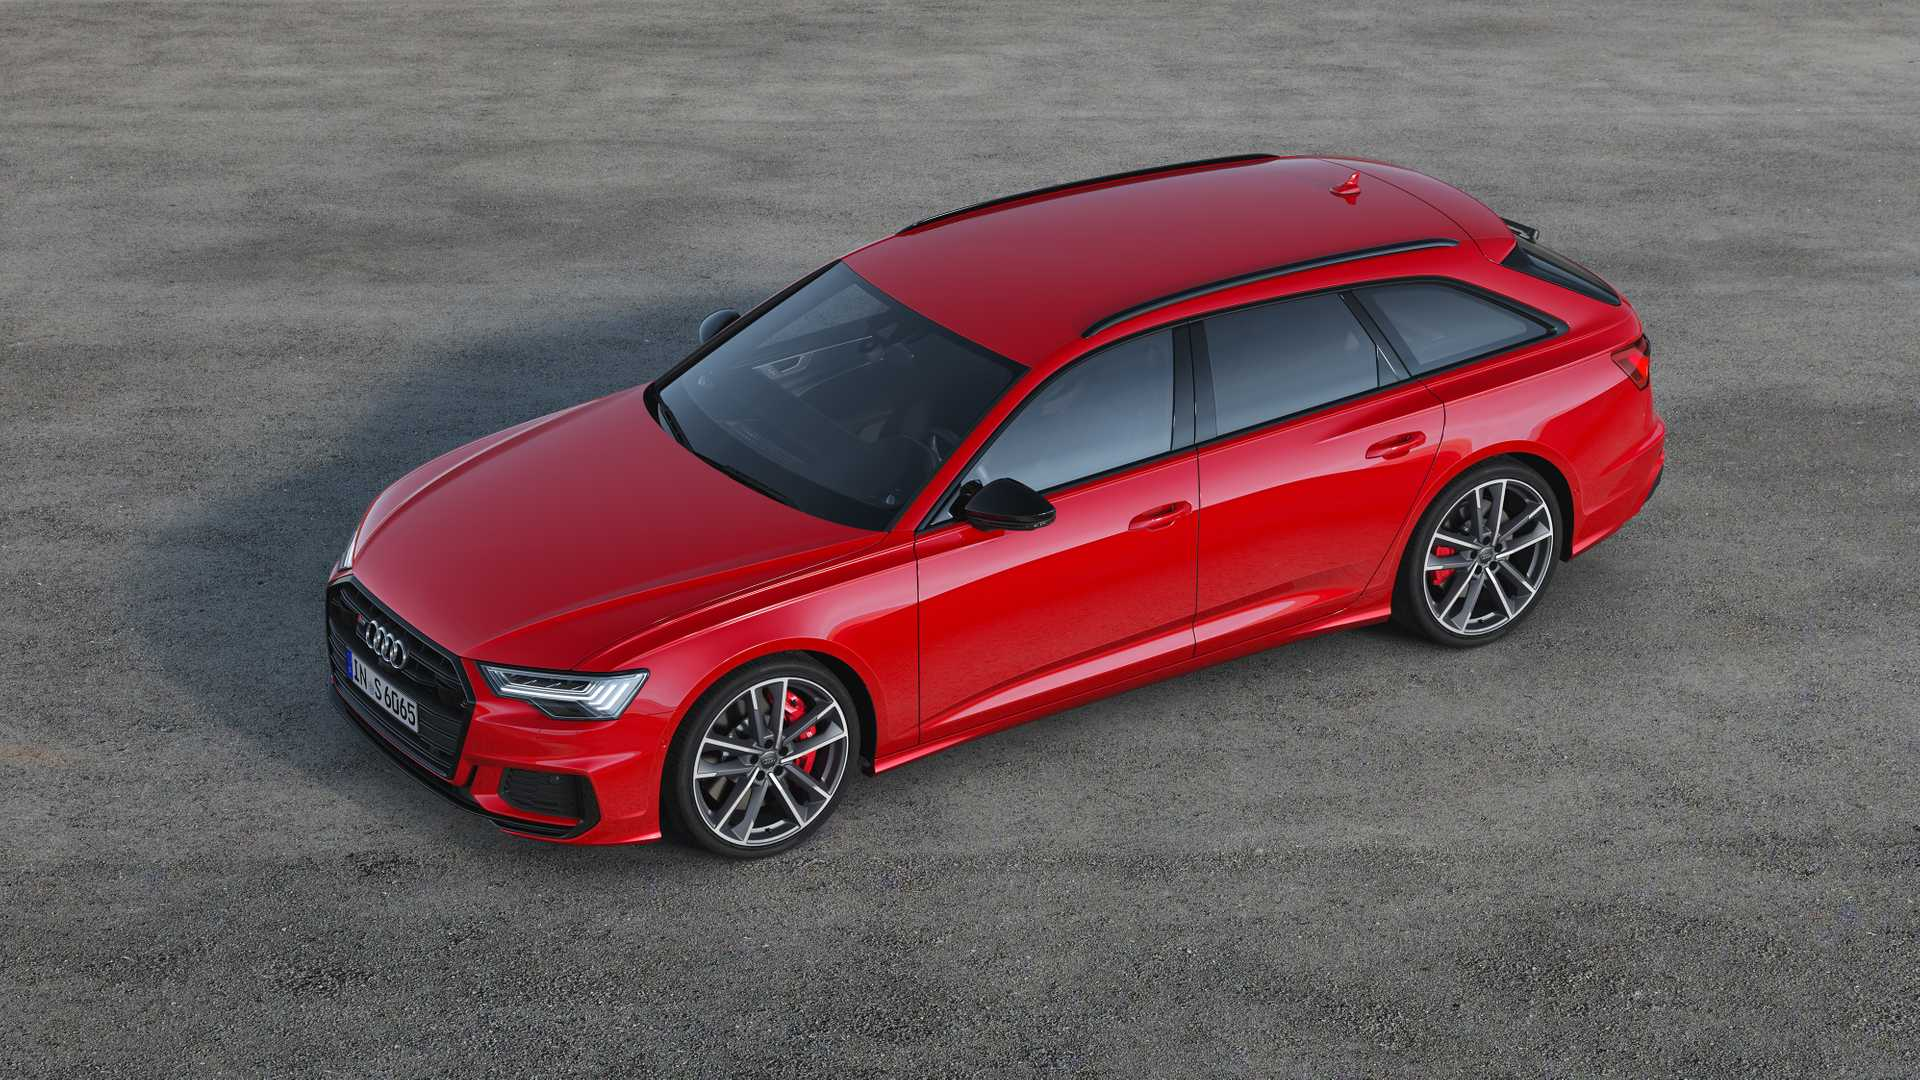 2019 Audi S6 Avant TDI (Color: Tango Red) Front Three-Quarter Wallpapers (9)